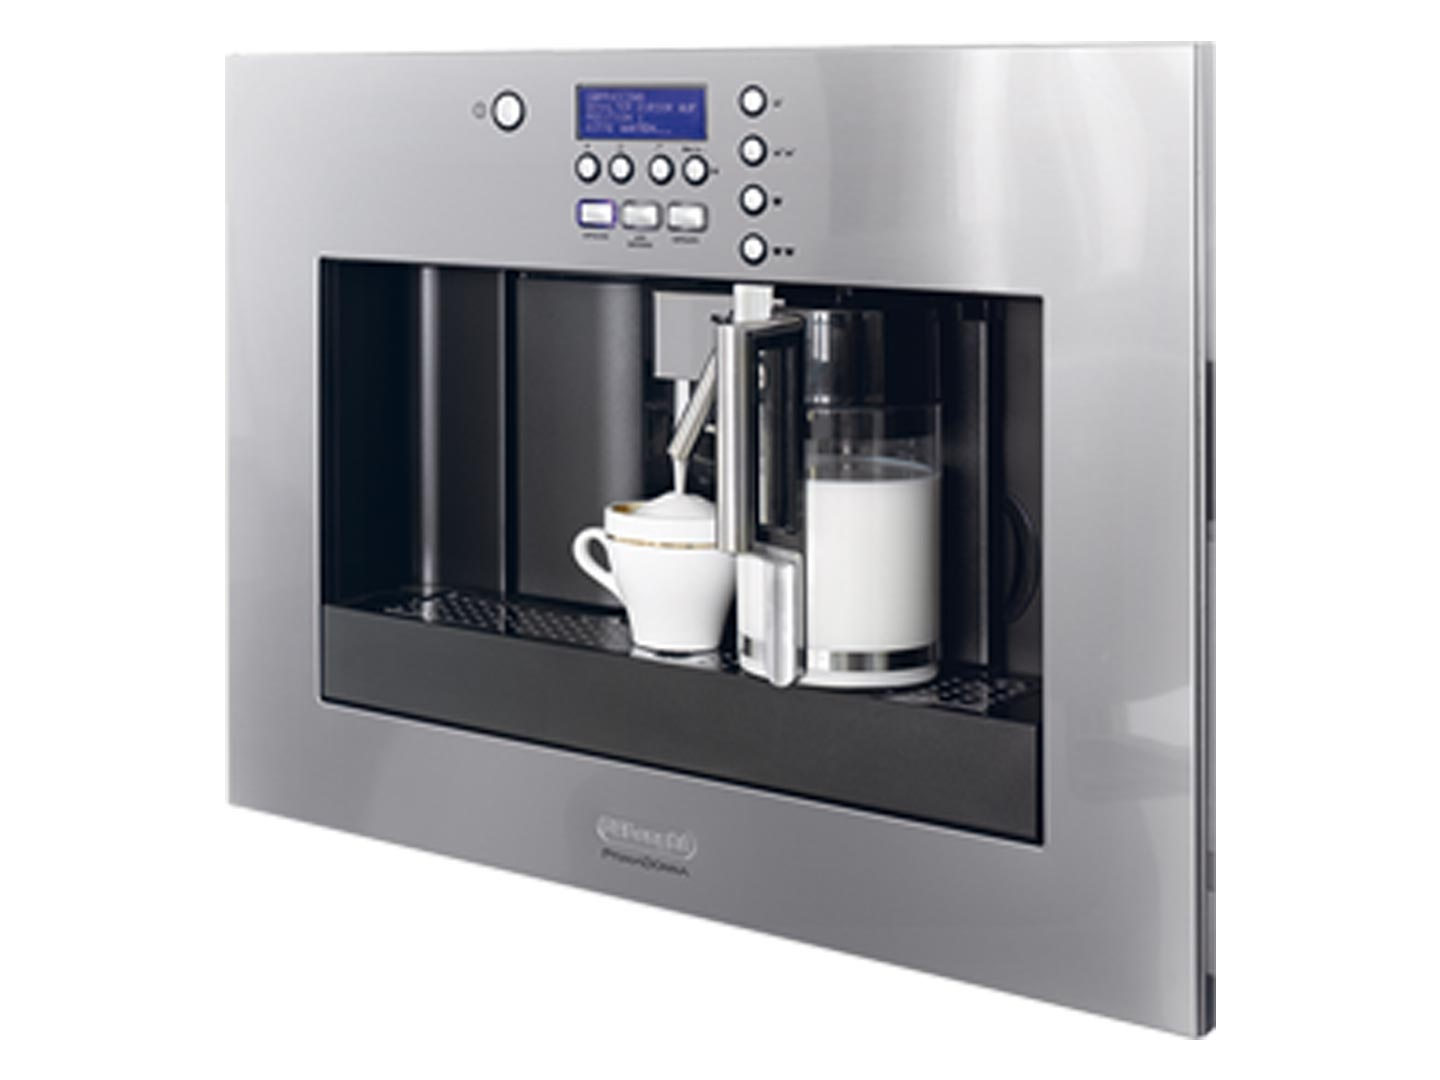 Delonghi Coffee Machine EABI6600